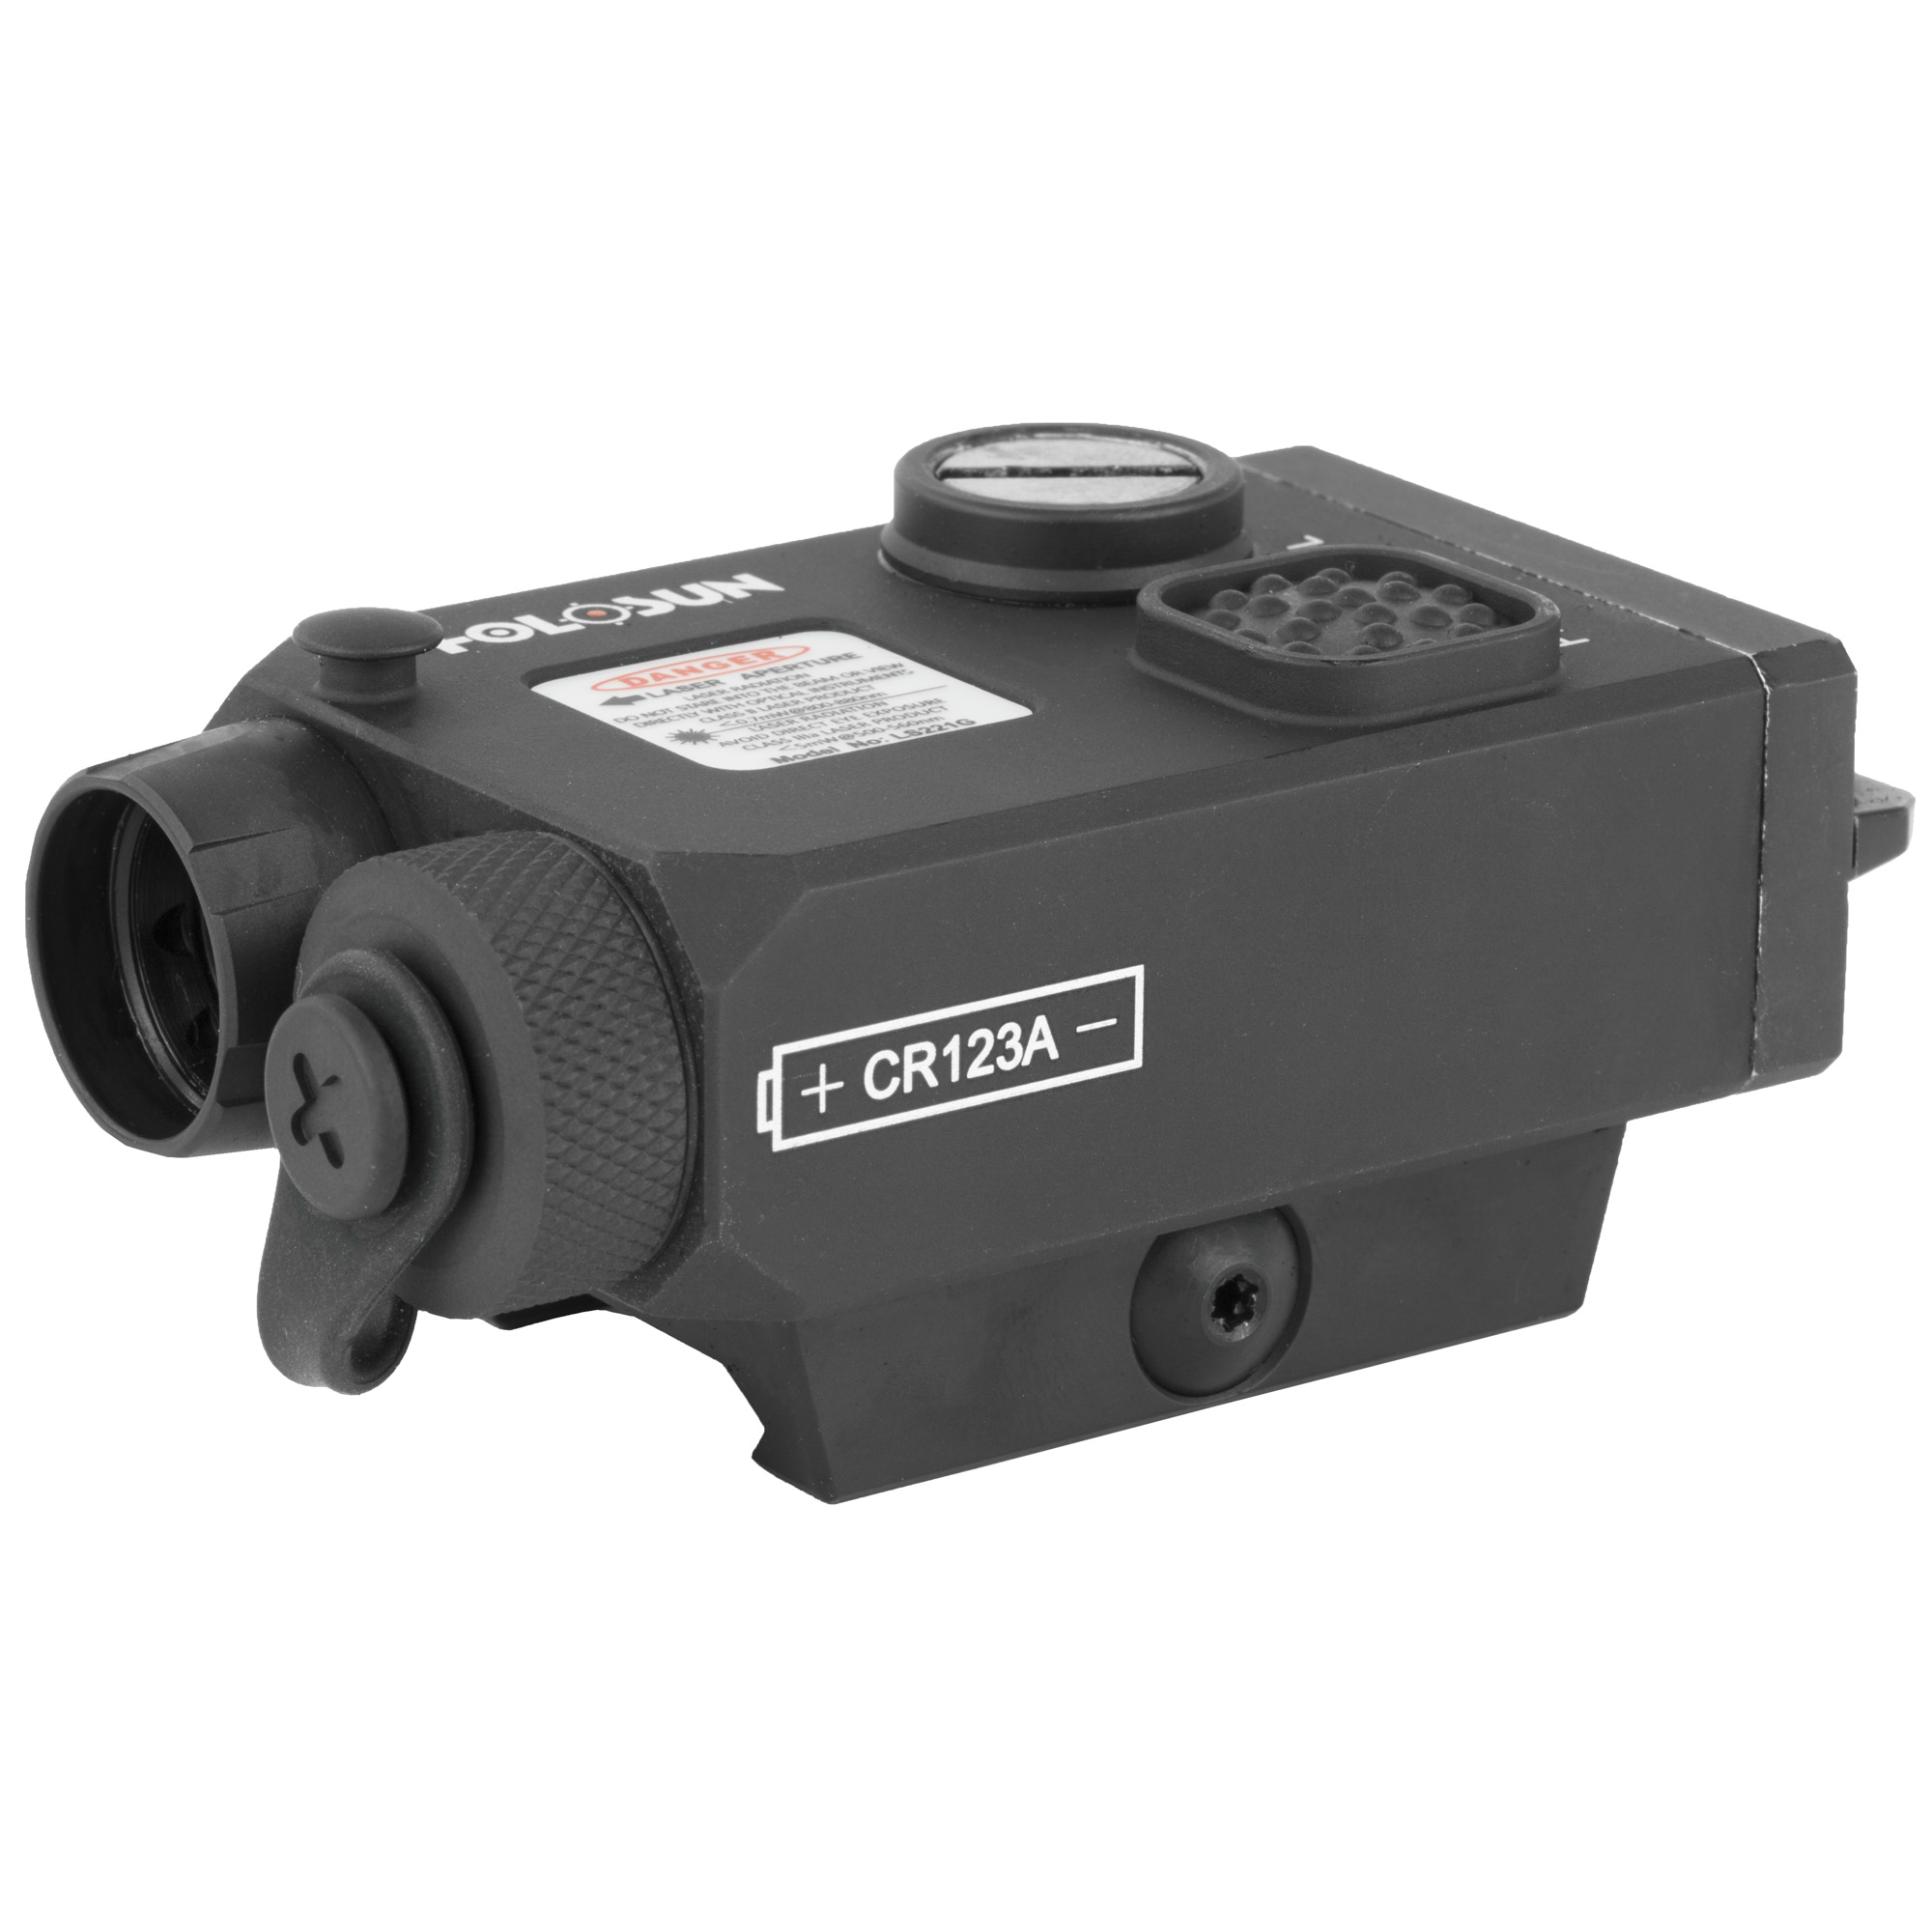 LS221G is a dual laser sight that features one visible green laser and one IR laser to be used with Night Vision devices. The two lasers are coaxial so that the user could adjust them synchronously using same windage and elevation adjustments.